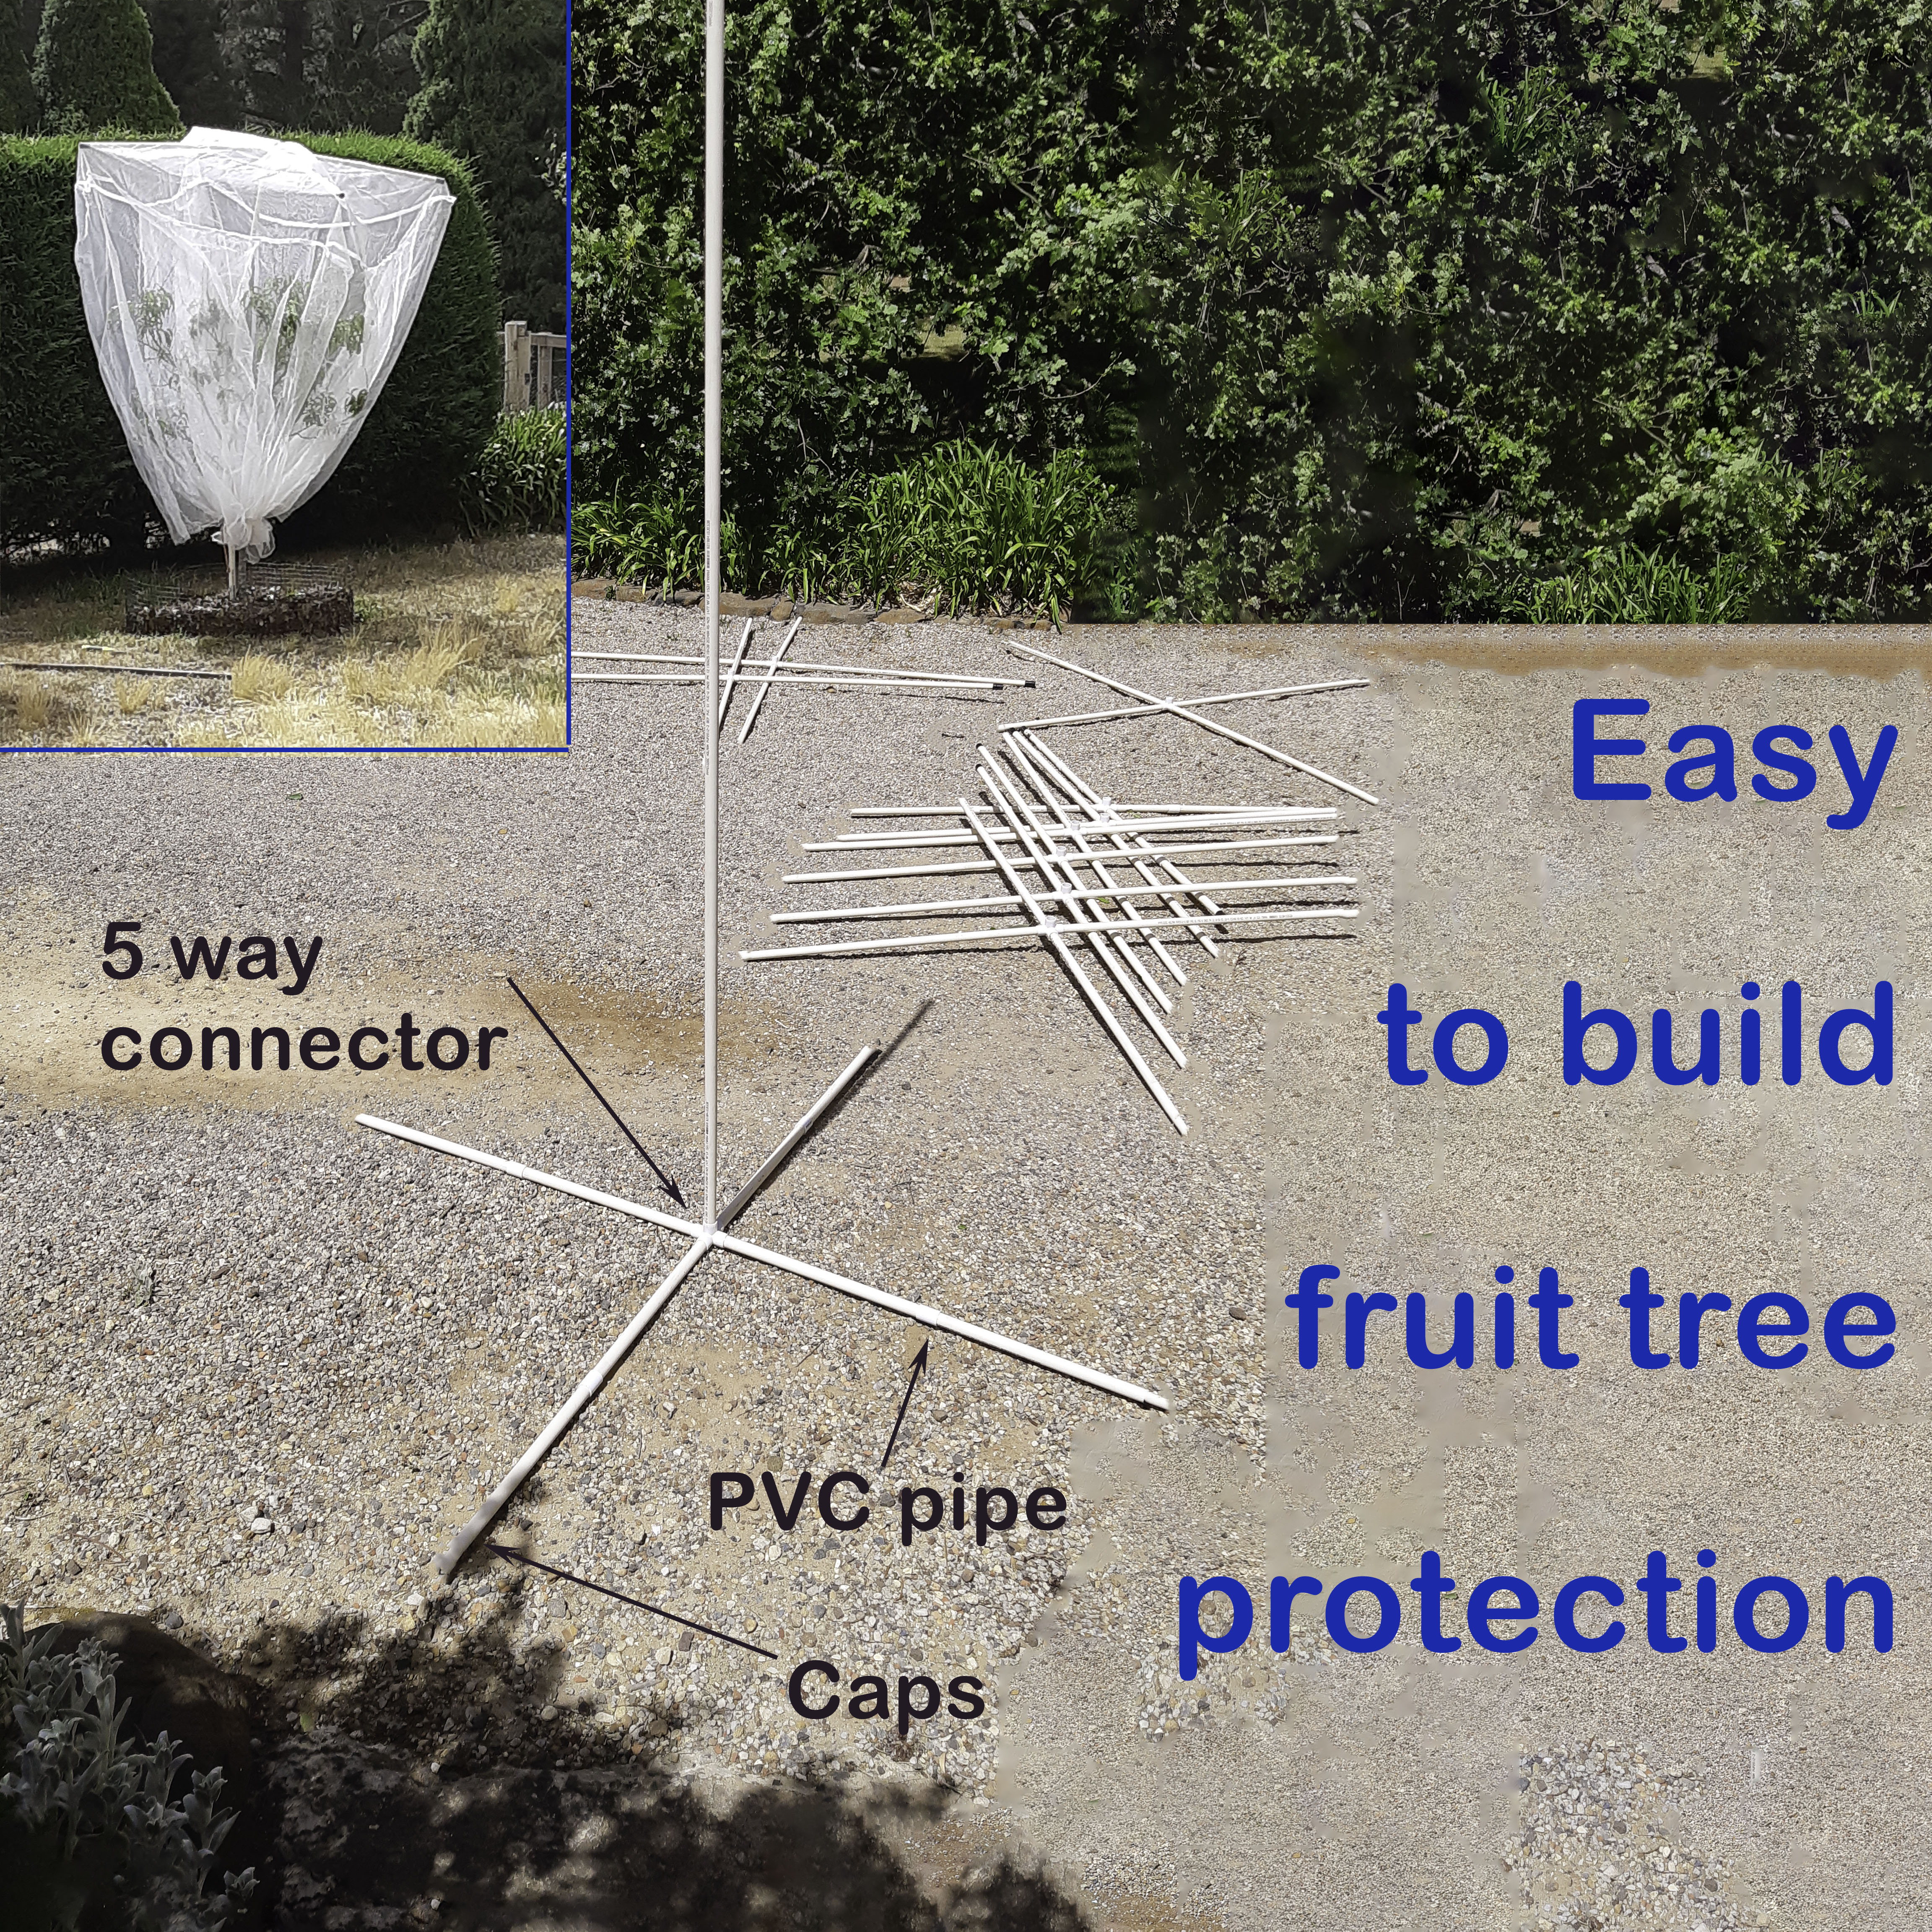 Fruit tree protection frame built with a 5 way connector fitting caps and PVC pipe supporting bird exclusion netting to keep the fruit safe